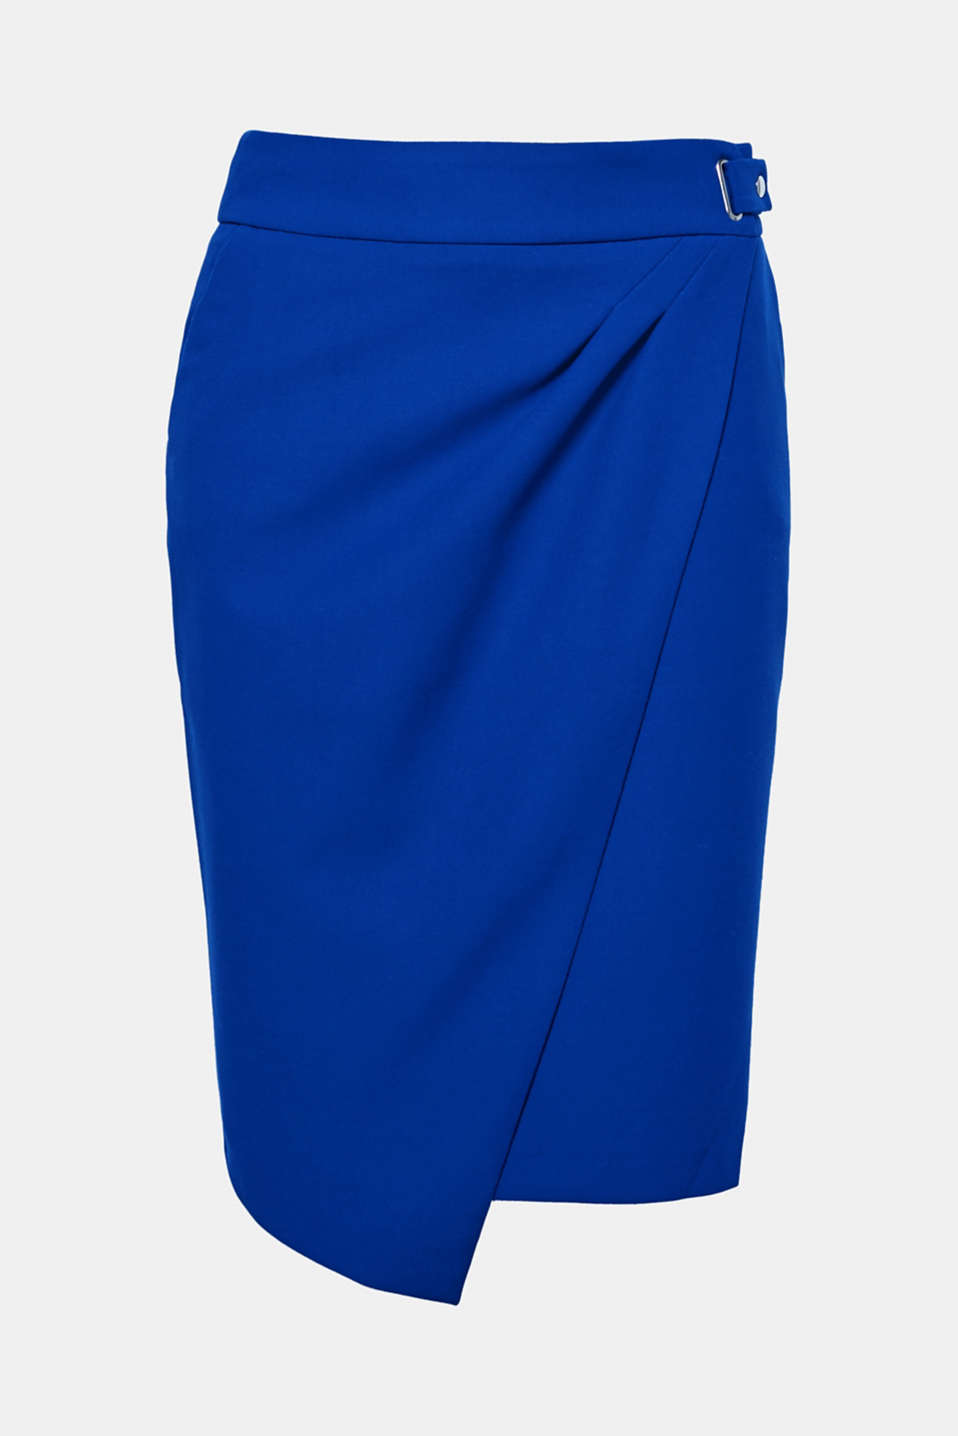 So easy, so sophisticated: This knee-length skirt wows with a sophisticated wrap-over effect.